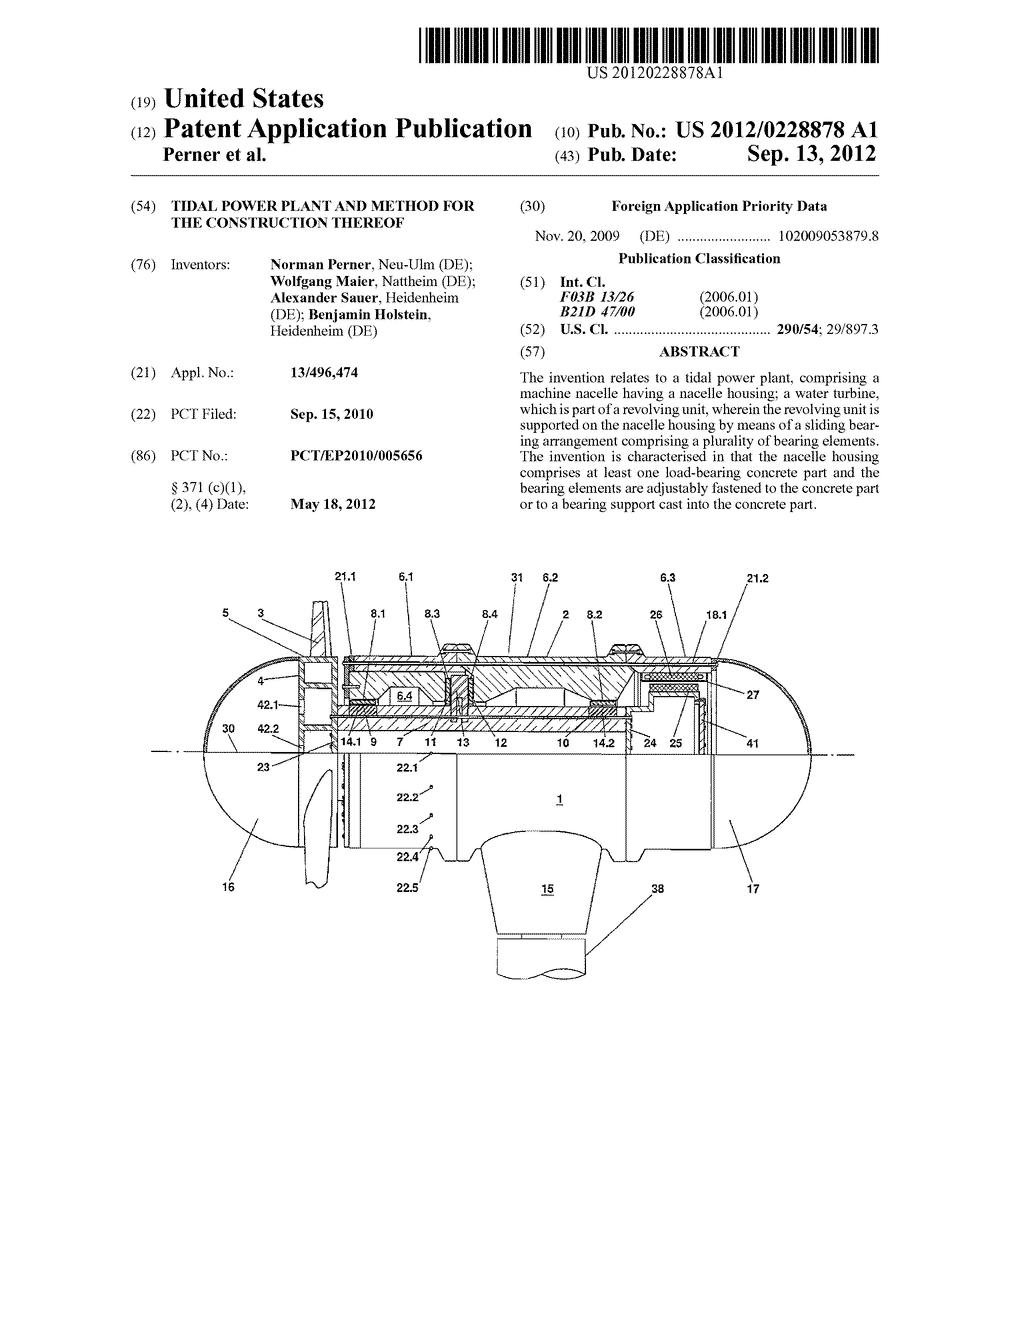 hight resolution of tidal power plant and method for the construction thereof diagram schematic and image 01